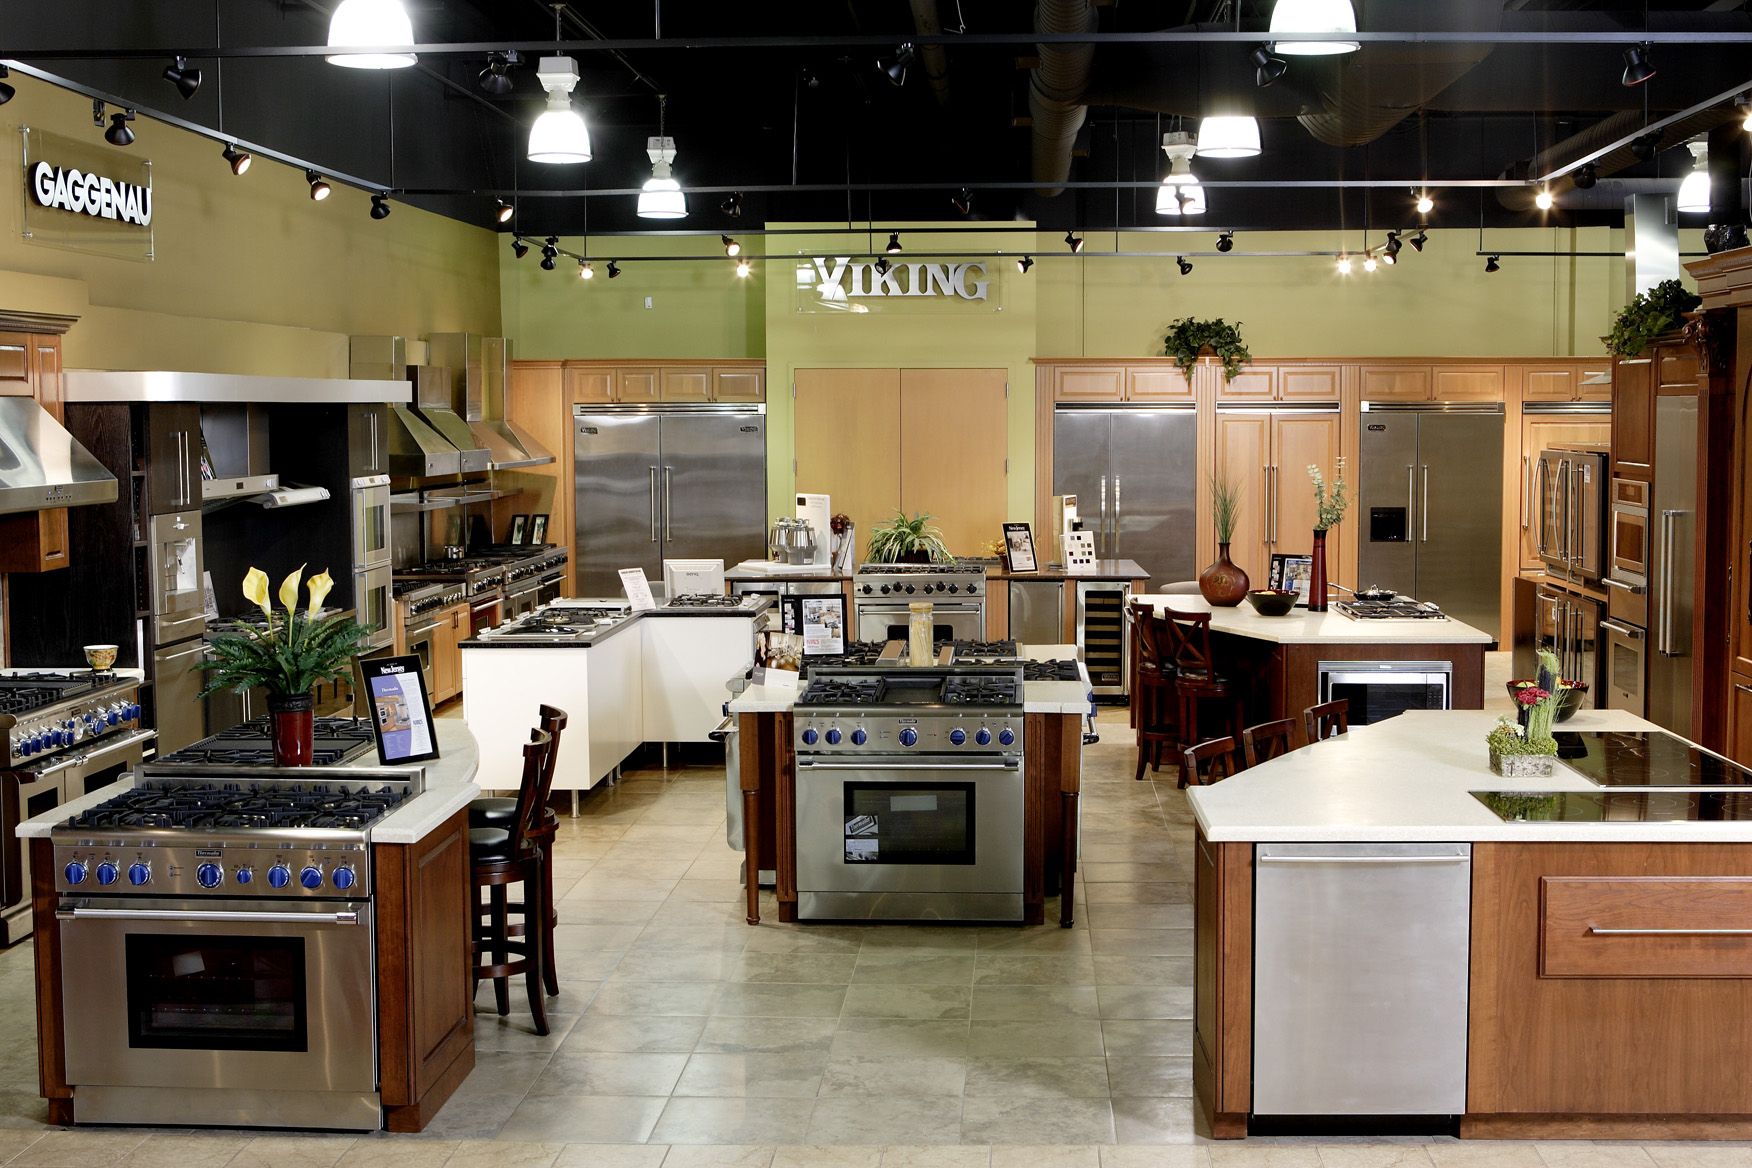 Uncategorized Kitchen Appliances Nj karls appliance the modern store nj home appliances